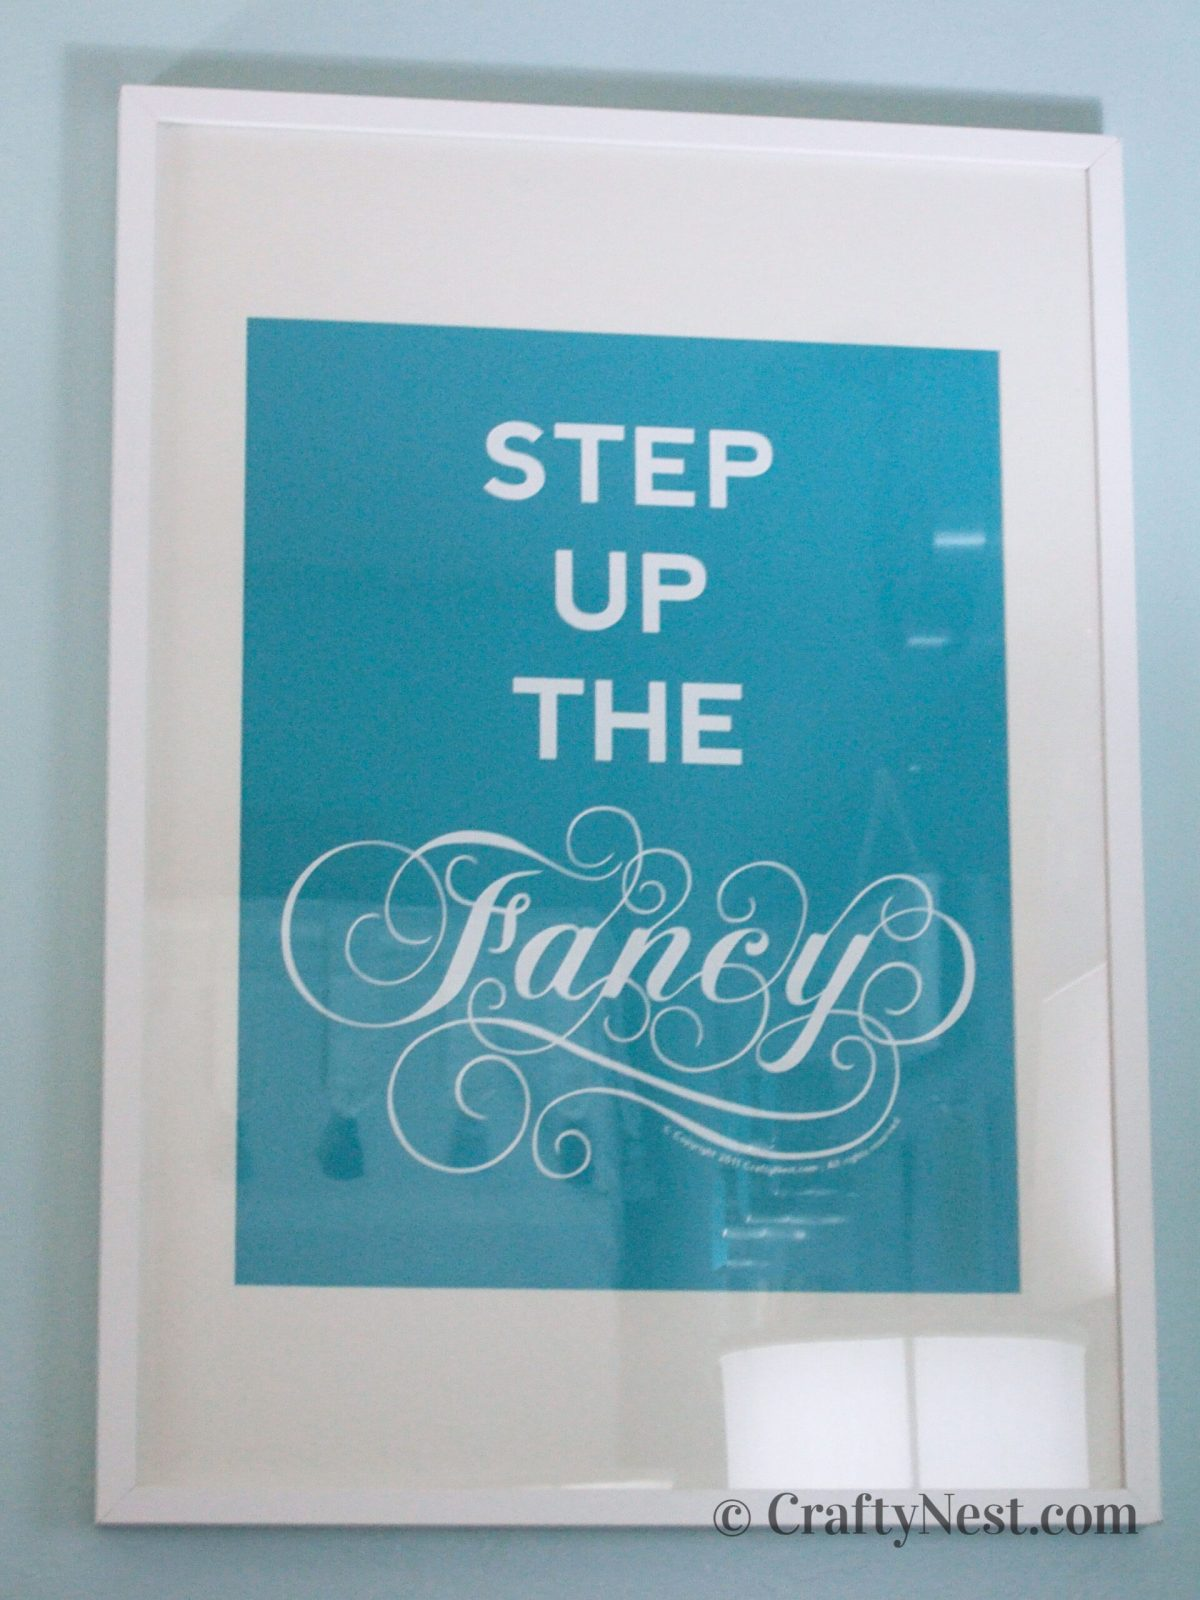 Step Up the Fancy poster, photo